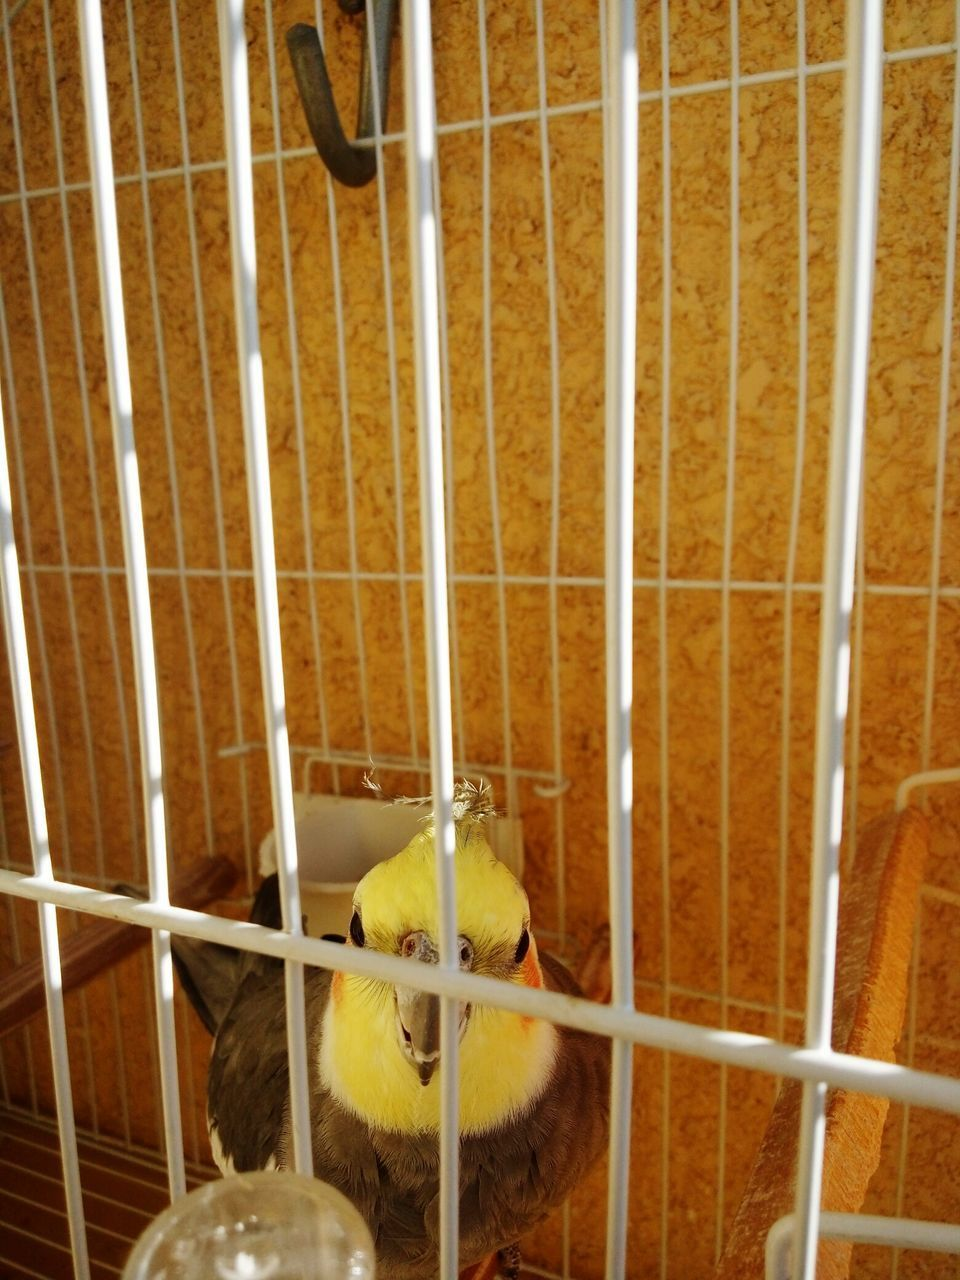 animal themes, cage, bird, domestic animals, birdcage, no people, one animal, young bird, animals in captivity, indoors, nature, yellow, trapped, day, close-up, mammal